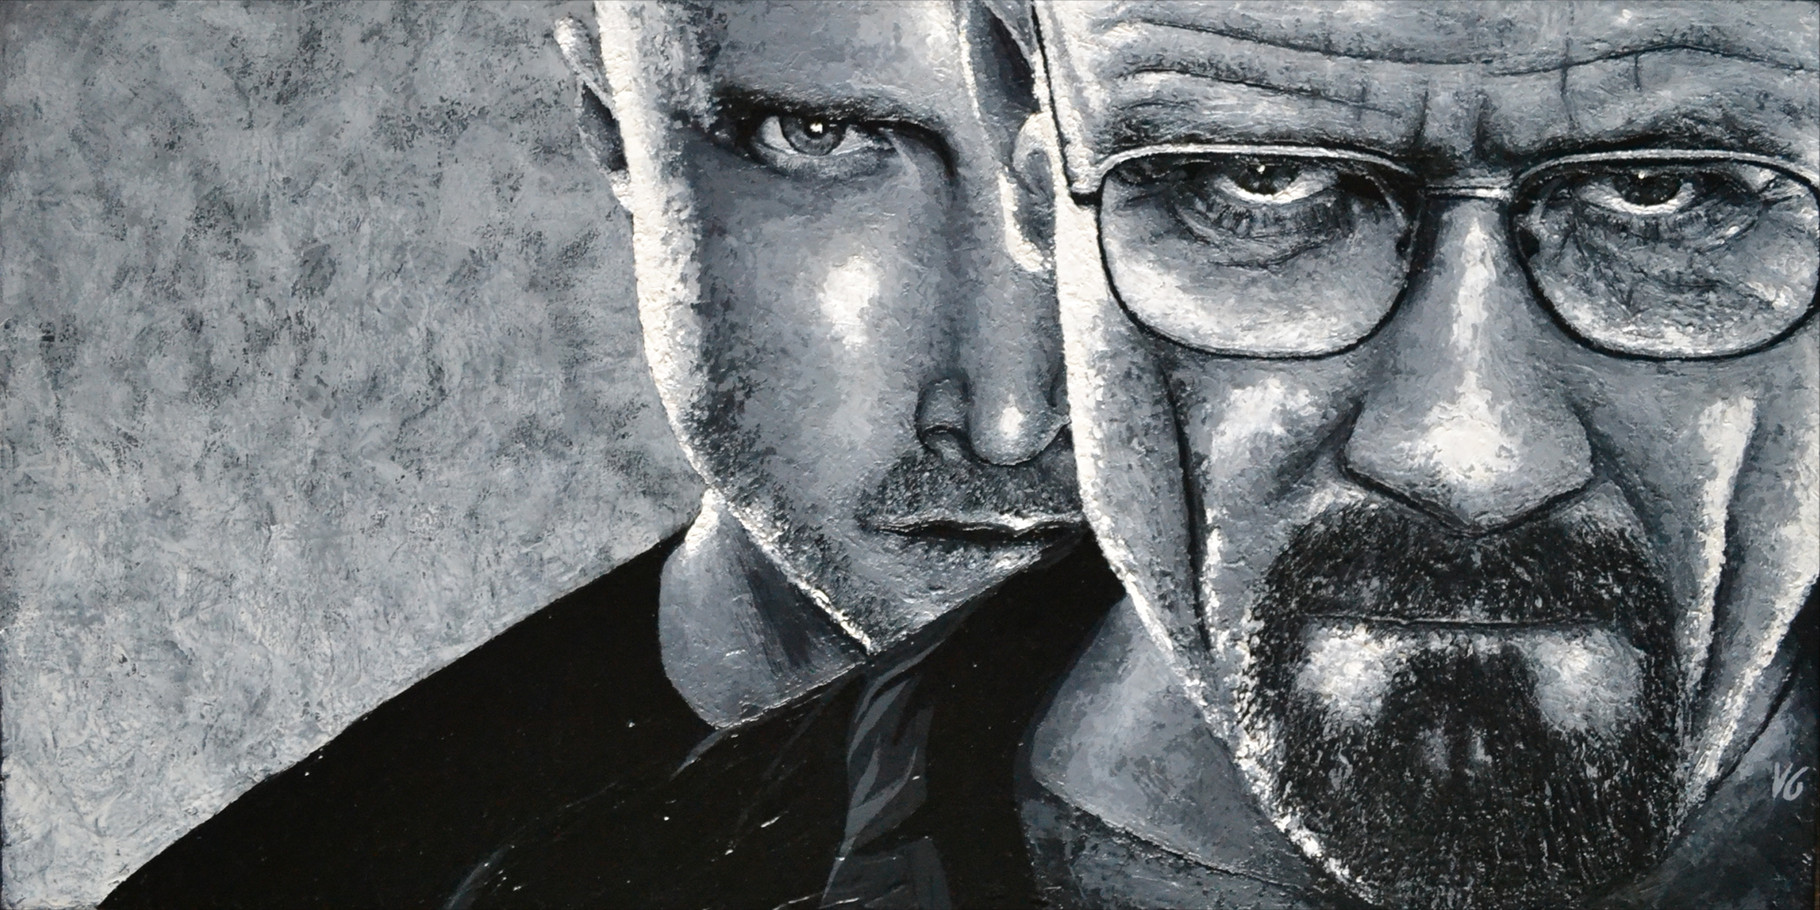 Breaking Bad, 40x80, technique mite, 2012